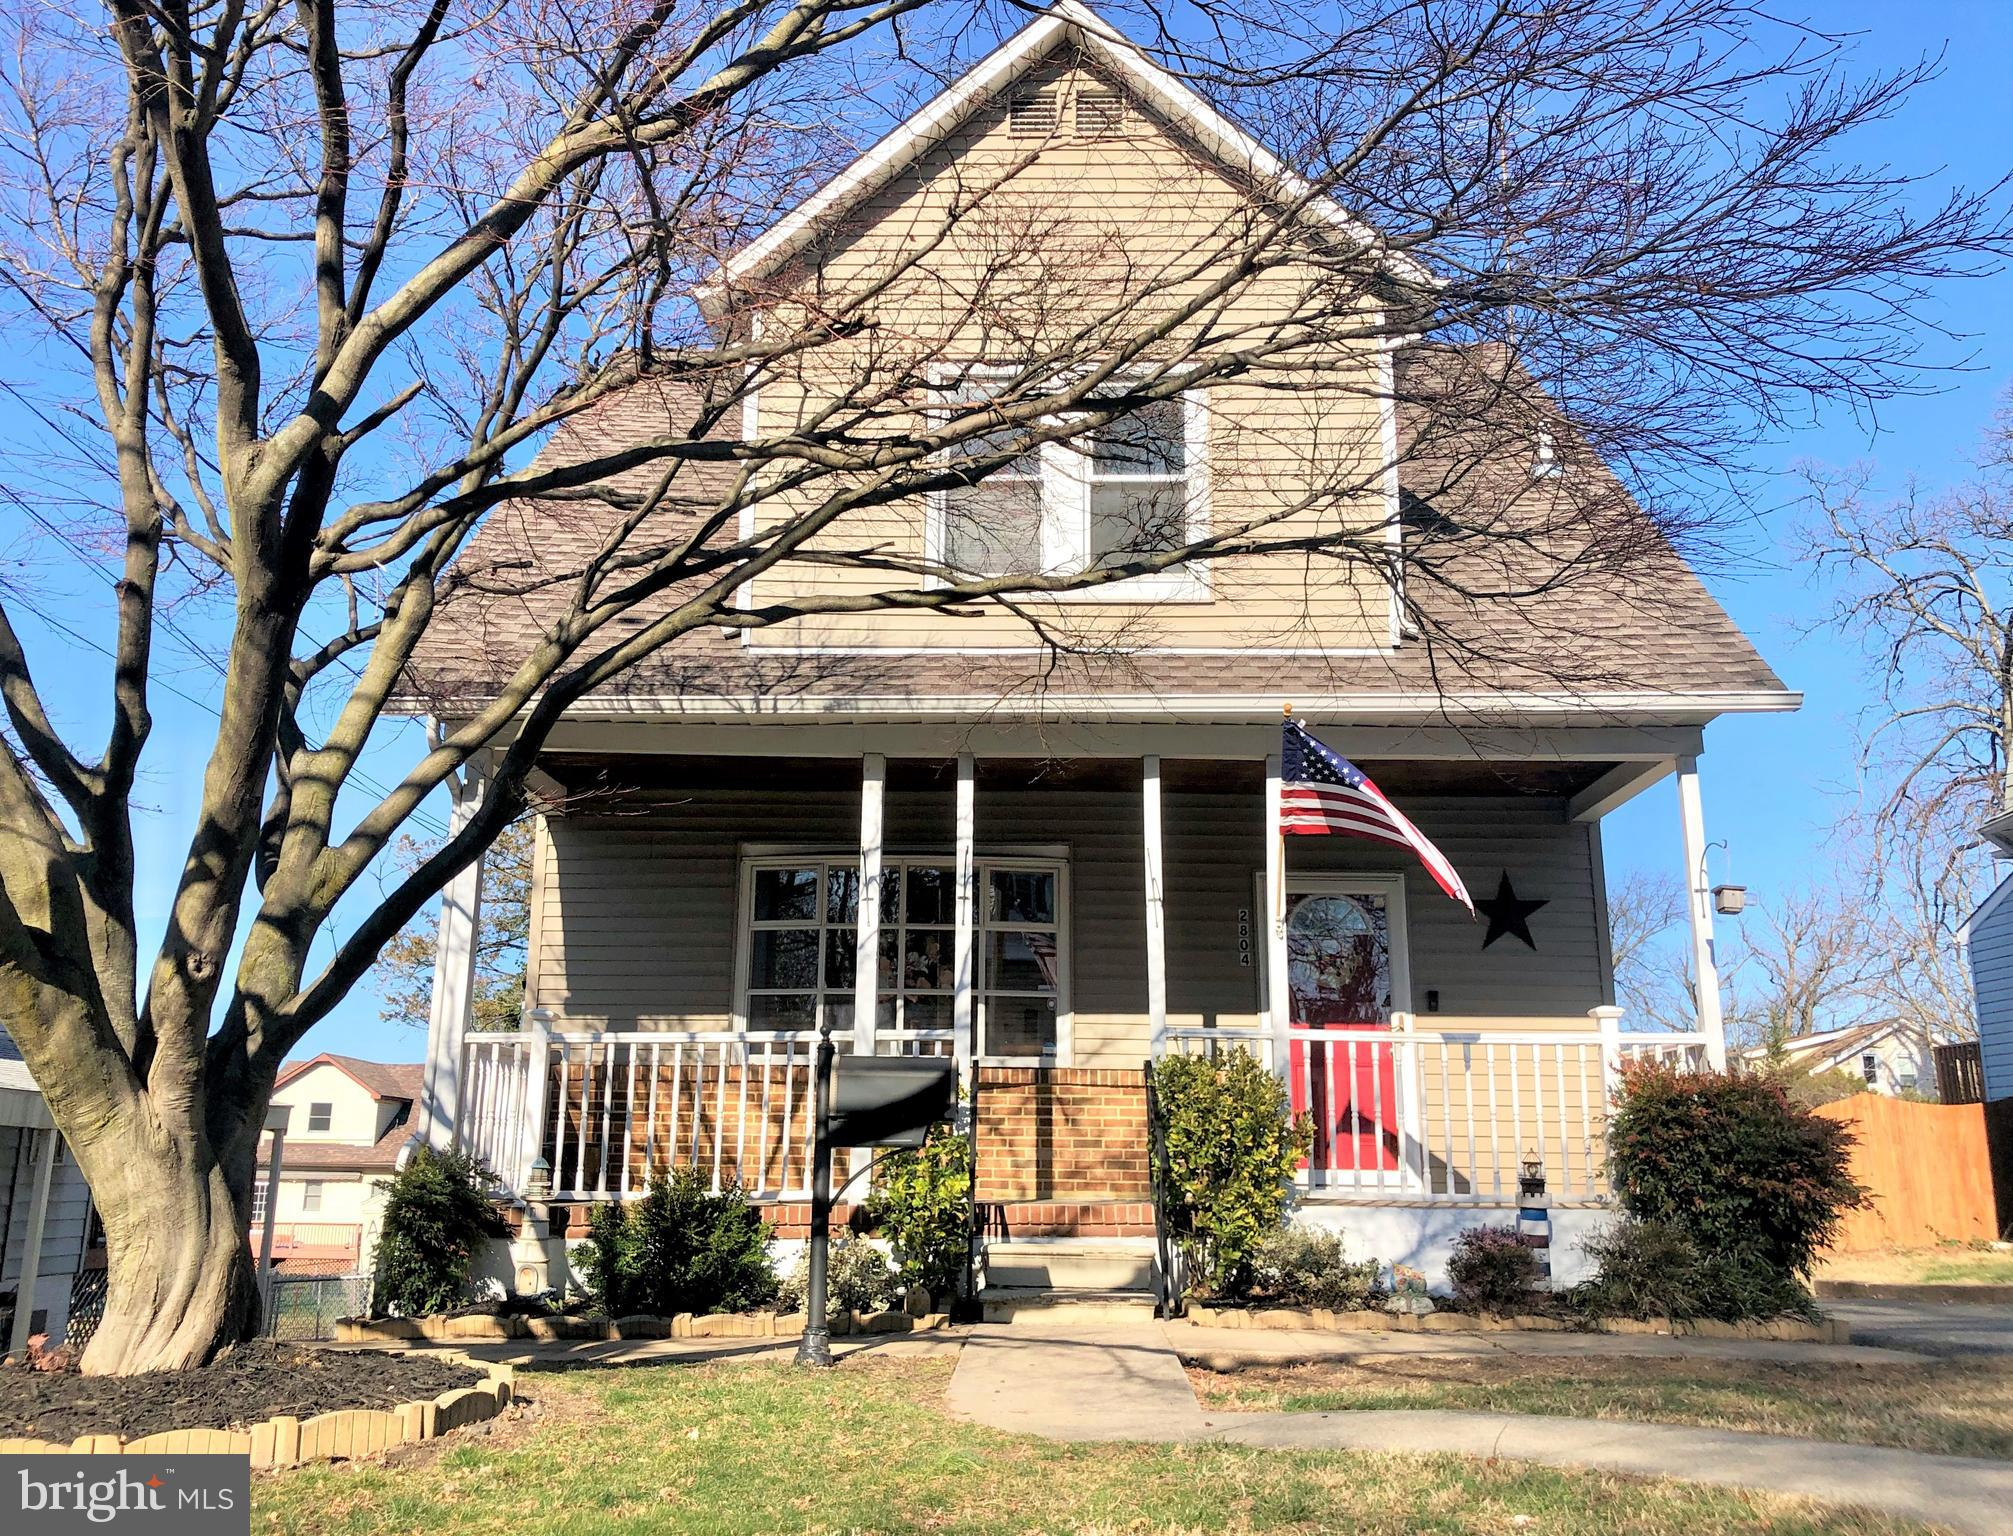 Are you stuck inside but still want to find a new home?  Just Copy and Paste the links below to view the virtual tours of this charming and affordable home in Parkville with 3 Bedrooms and 2 full Bathrooms: https://american-imagery-llc.seehouseat.com/public/vtour/display/1545834?idx=1#!/   AND    https://www.dropbox.com/s/9pxgw2oryxj5hkv/2804%20HIllcrest%20Ave%20-%20Unbranded.mp4?dl=0    Proudly featuring a roof with 30 year architectural shingles, brazilian cherry hardwood floors on the main level, pellet stove in the family room, stainless steel appliances,  fenced in backyard,  storage shed, and off-street parking for 3 vehicles.   You'll love entertaining on the large deck or relaxing on the charming front porch.  The Master Bedroom features hardwood floors and double closets.  The bedrooms are generous sizes and the upstairs bathroom has been nicely updated.  The floored attic and unfinished basement both provide plenty of storage.  Very conveniently located and within walking distance to the shops and restaurants at the Parkville Shopping Center.  One Year Home Warranty Included.  SELLERS ARE MOTIVATED - LETS MAKE A DEAL!